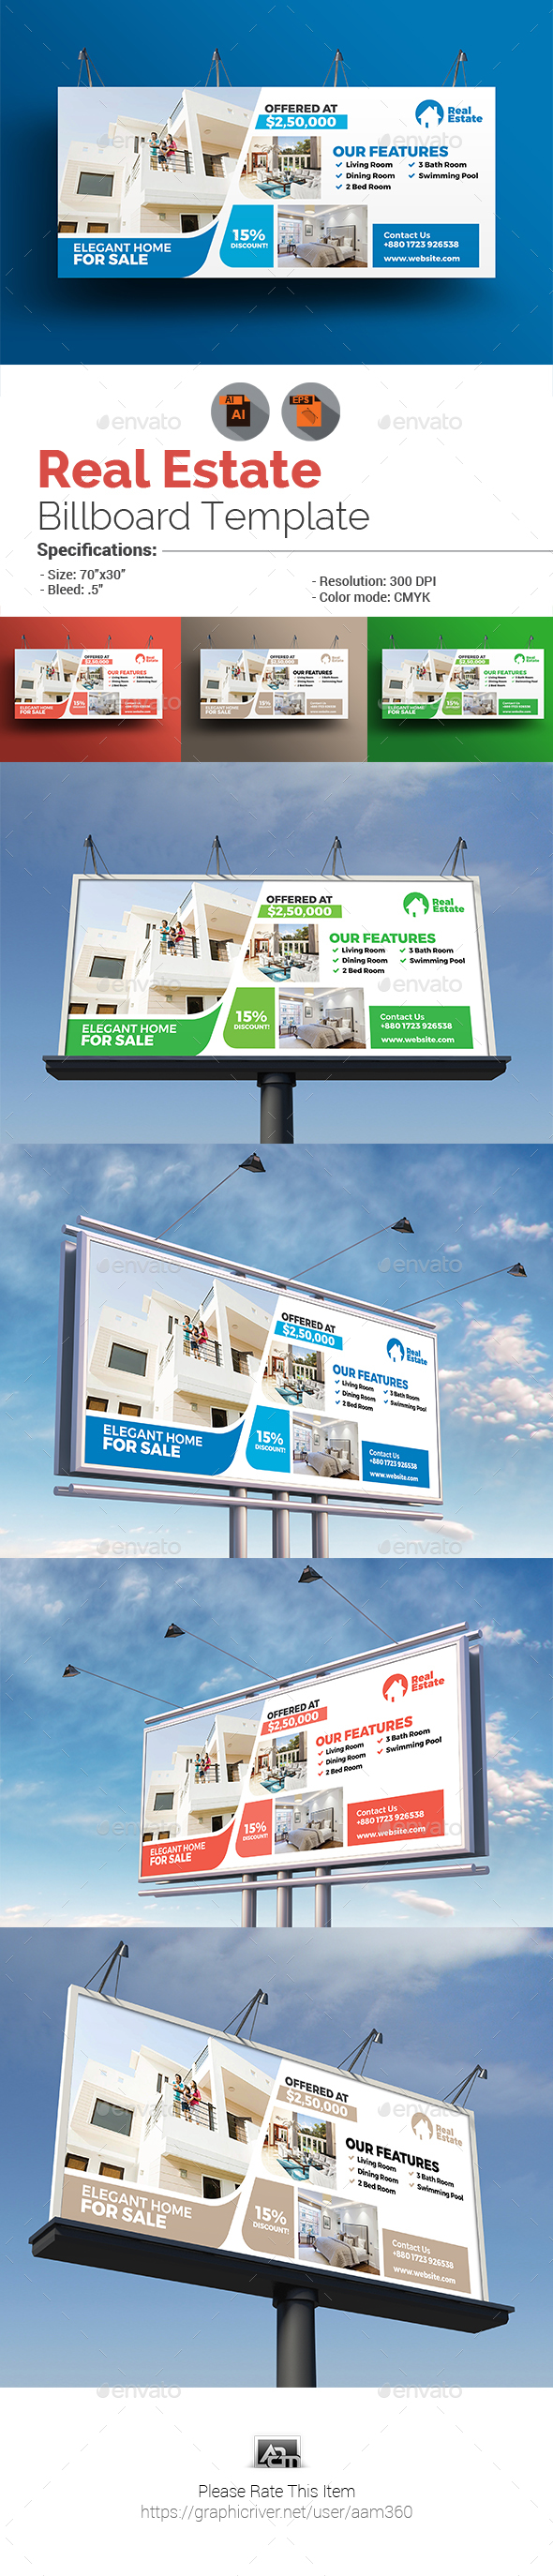 Real Estate Billboard Template - Signage Print Templates